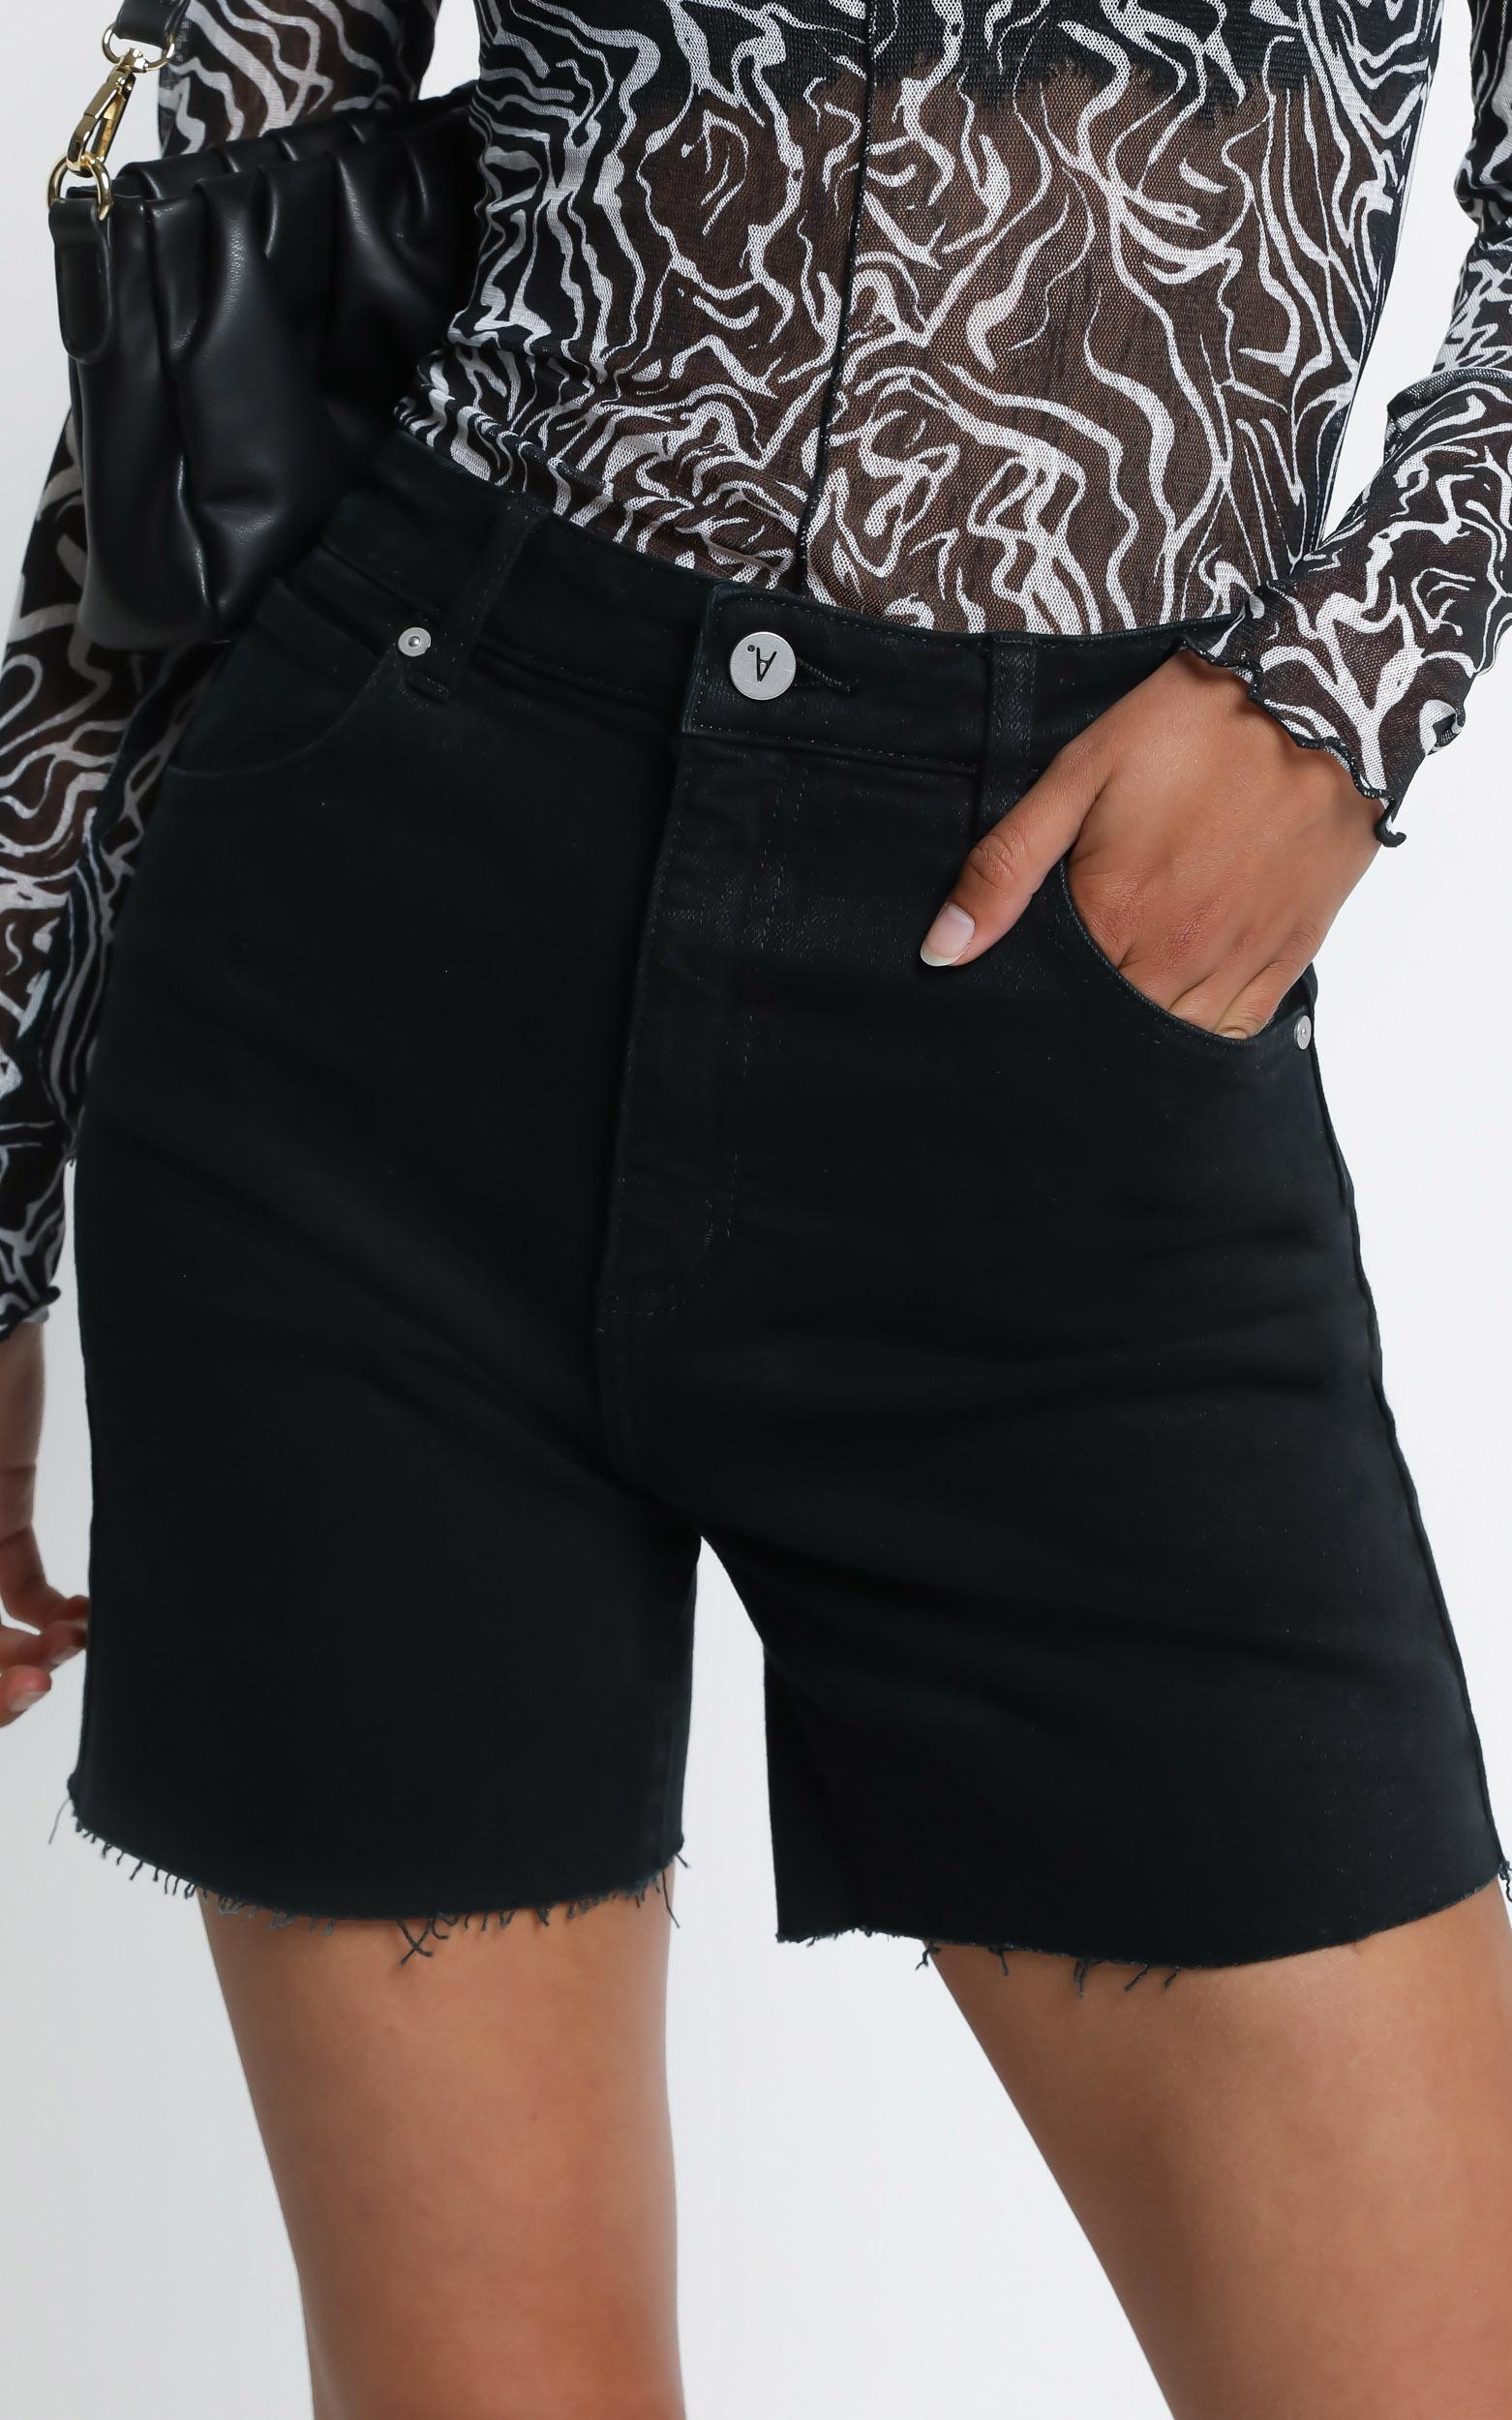 Abrand - Claudia Cut Off Denim Shorts in Dead Of The Night - 6 (XS), BLK3, hi-res image number null